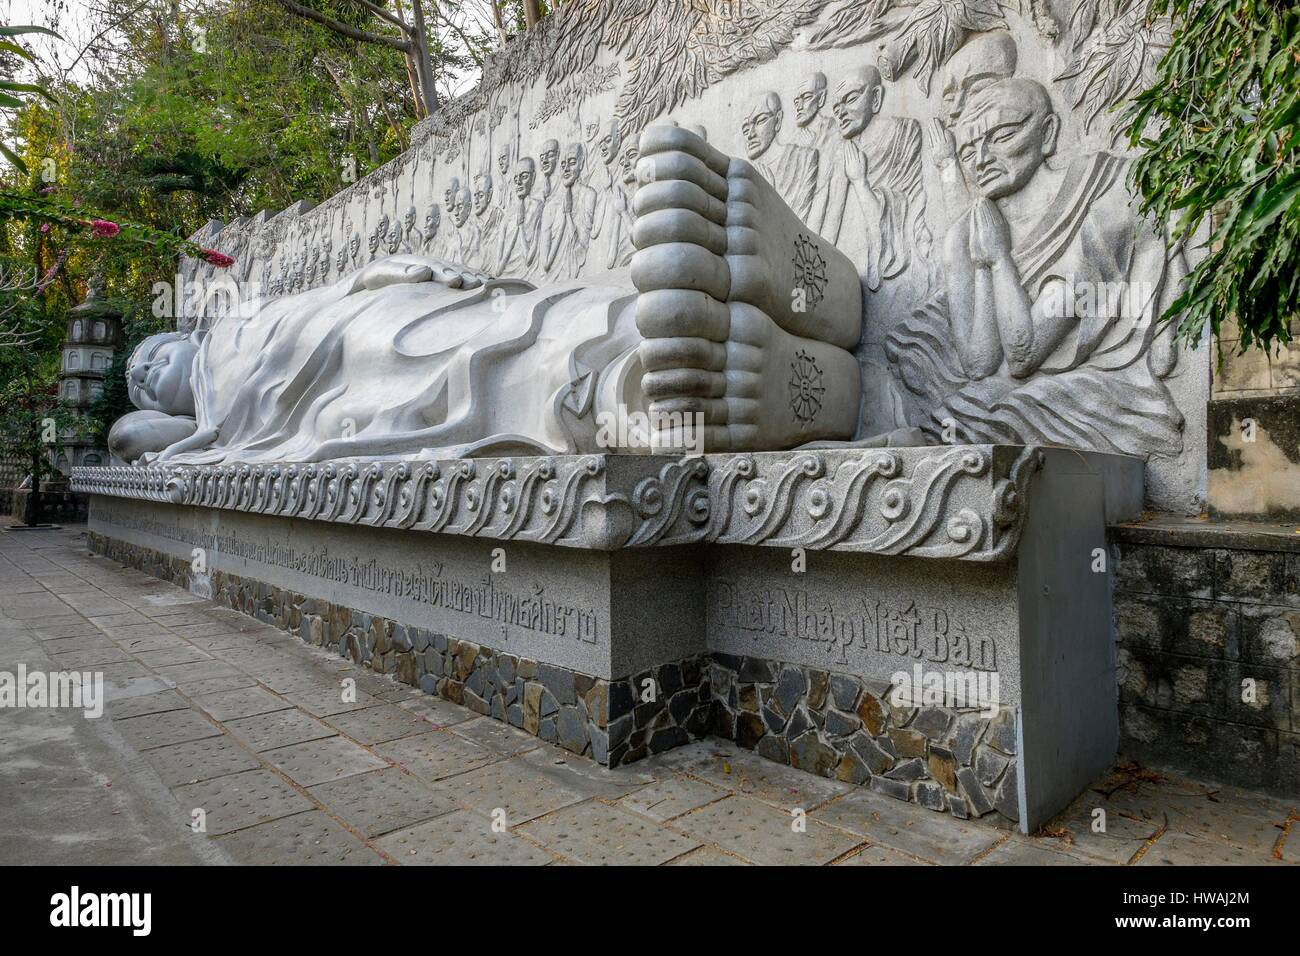 Vietnam, South Central Coast region, Khanh Hoa province, Nha Trang, Long Son pagoda, lying Buddha Stock Photo